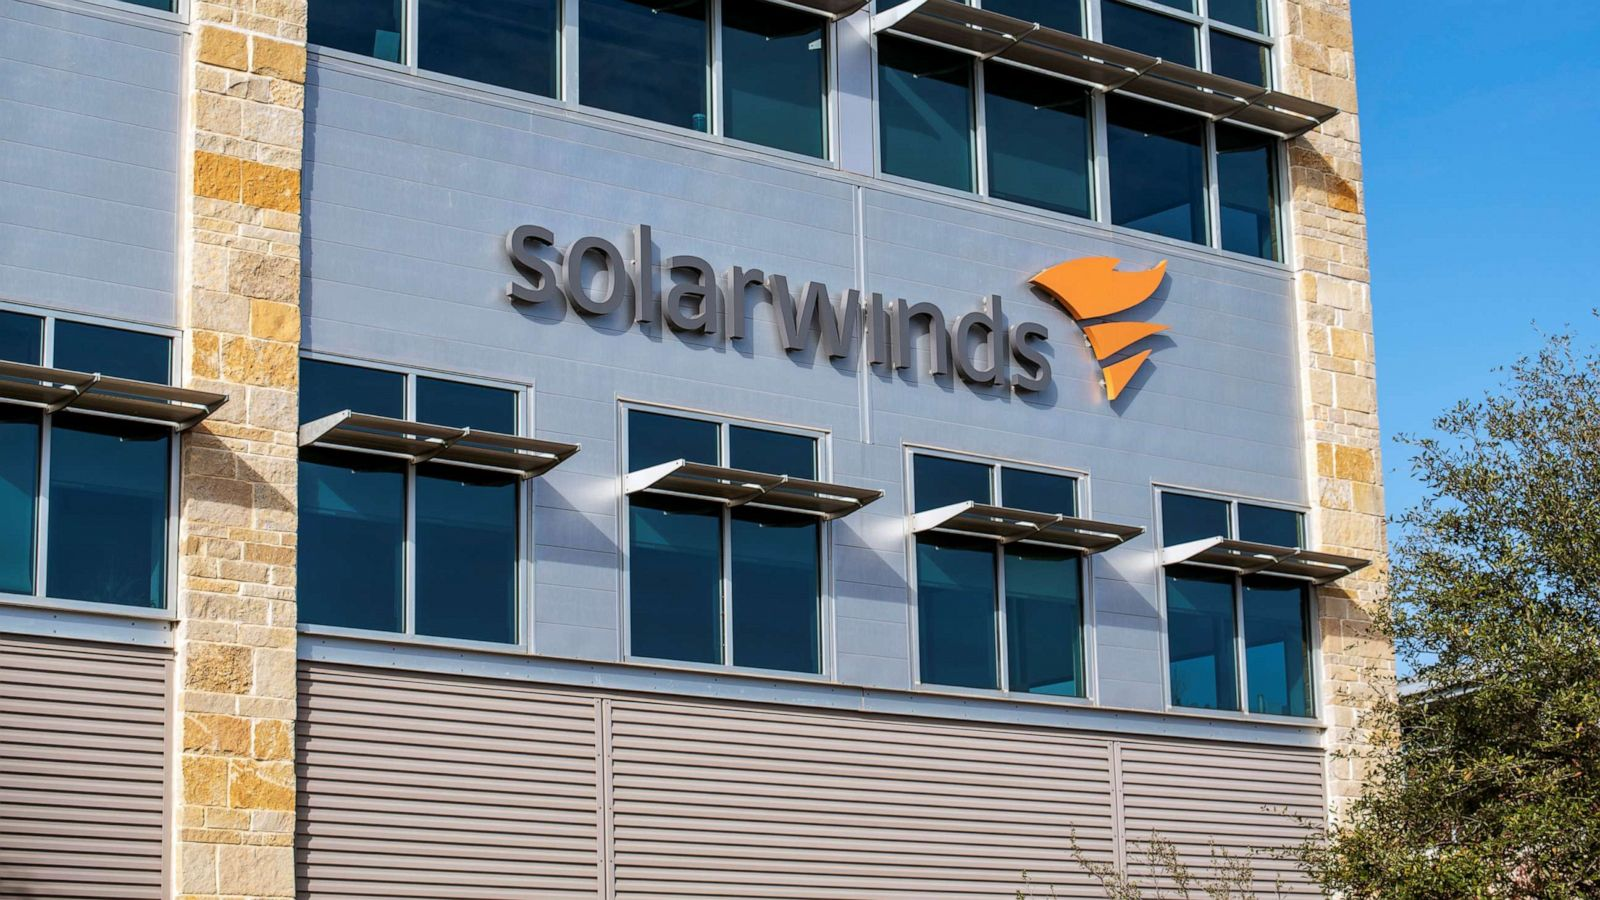 abcnews.go.com - Luke Barr - Russian nation-state actor behind SolarWinds cyberattack at it again: Microsoft